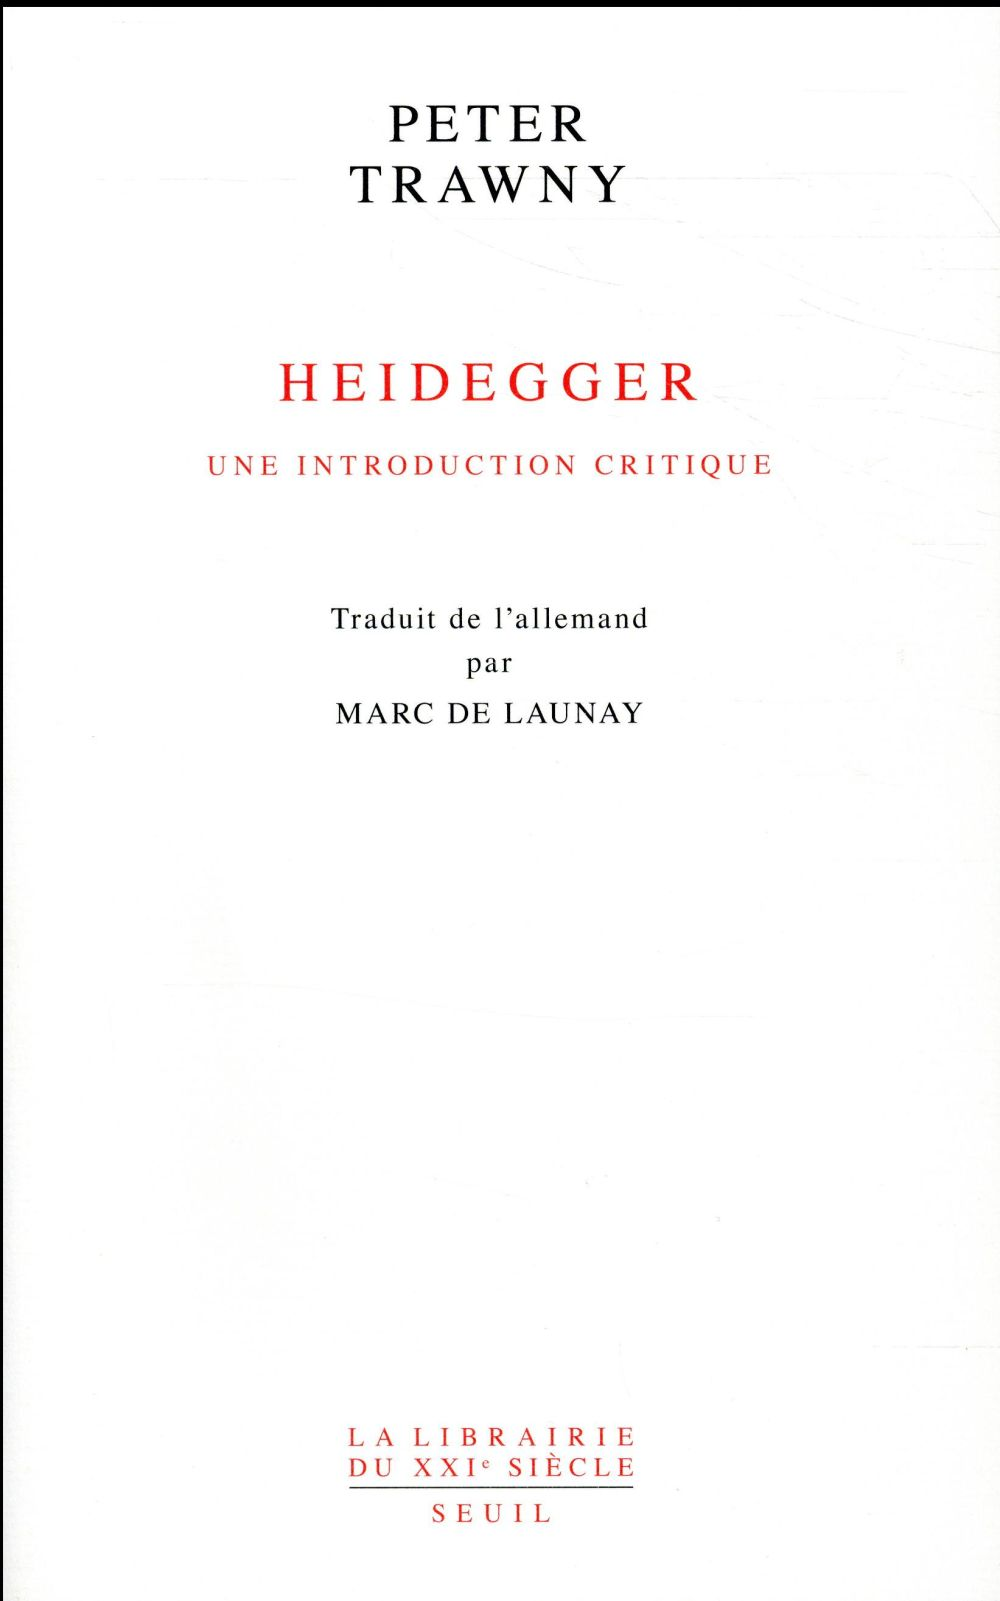 Heidegger, une introduction critique